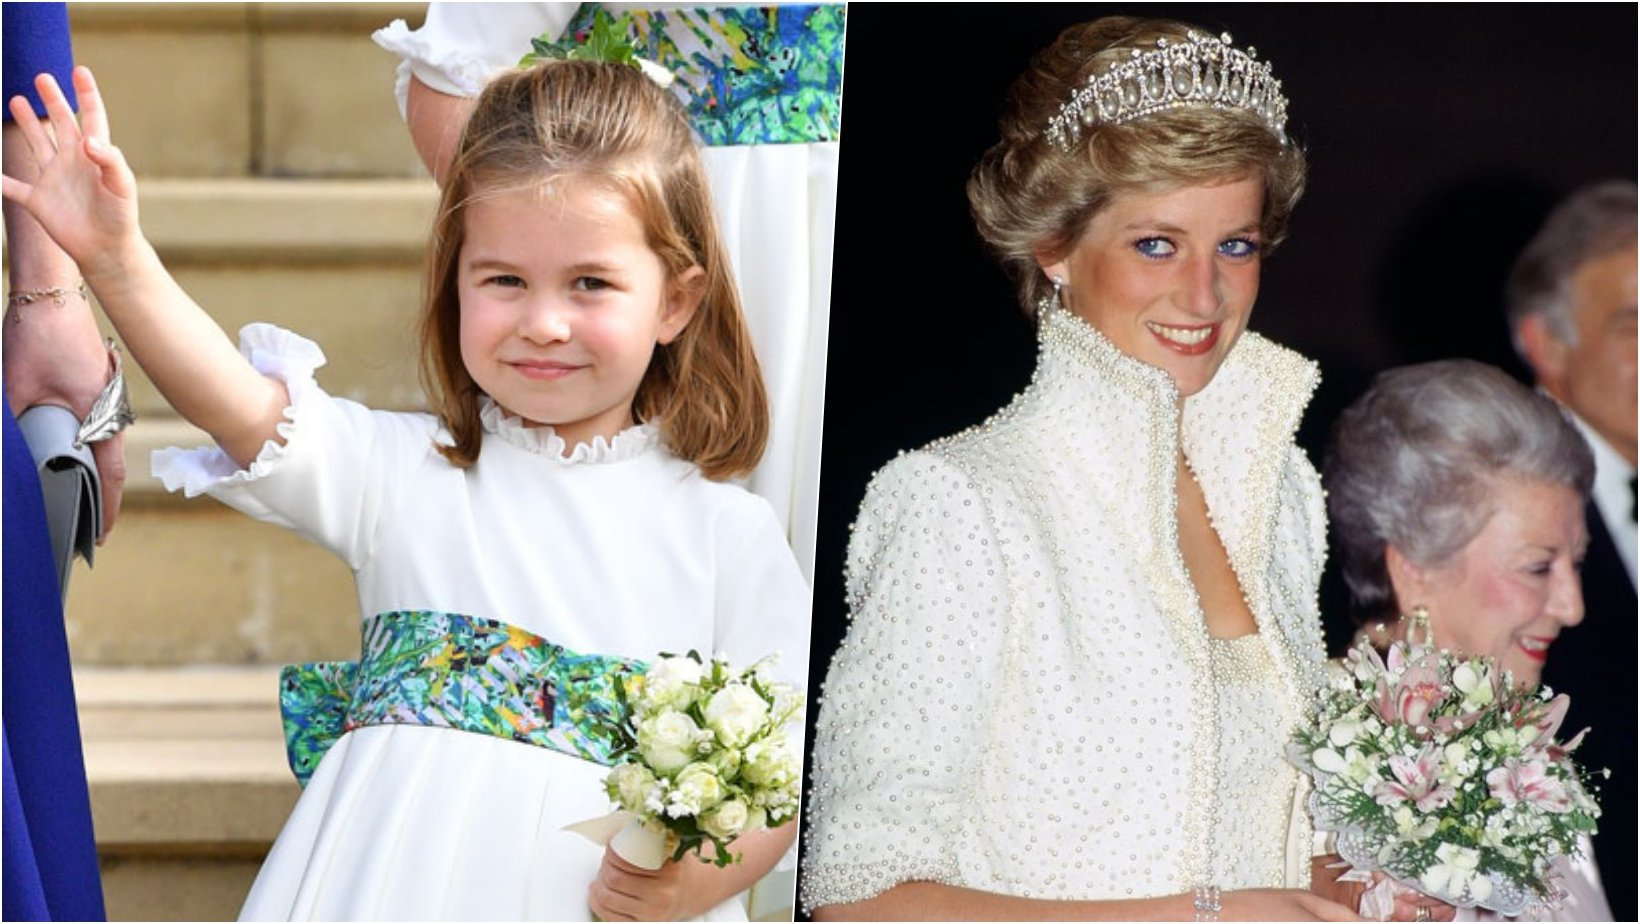 6 facebook cover 28.jpg?resize=412,232 - Princess Diana's PRICELESS Wedding Heirloom Is Gifted To Princess Charlotte Instead Of Meghan And Prince Harry's Daughter, Lili